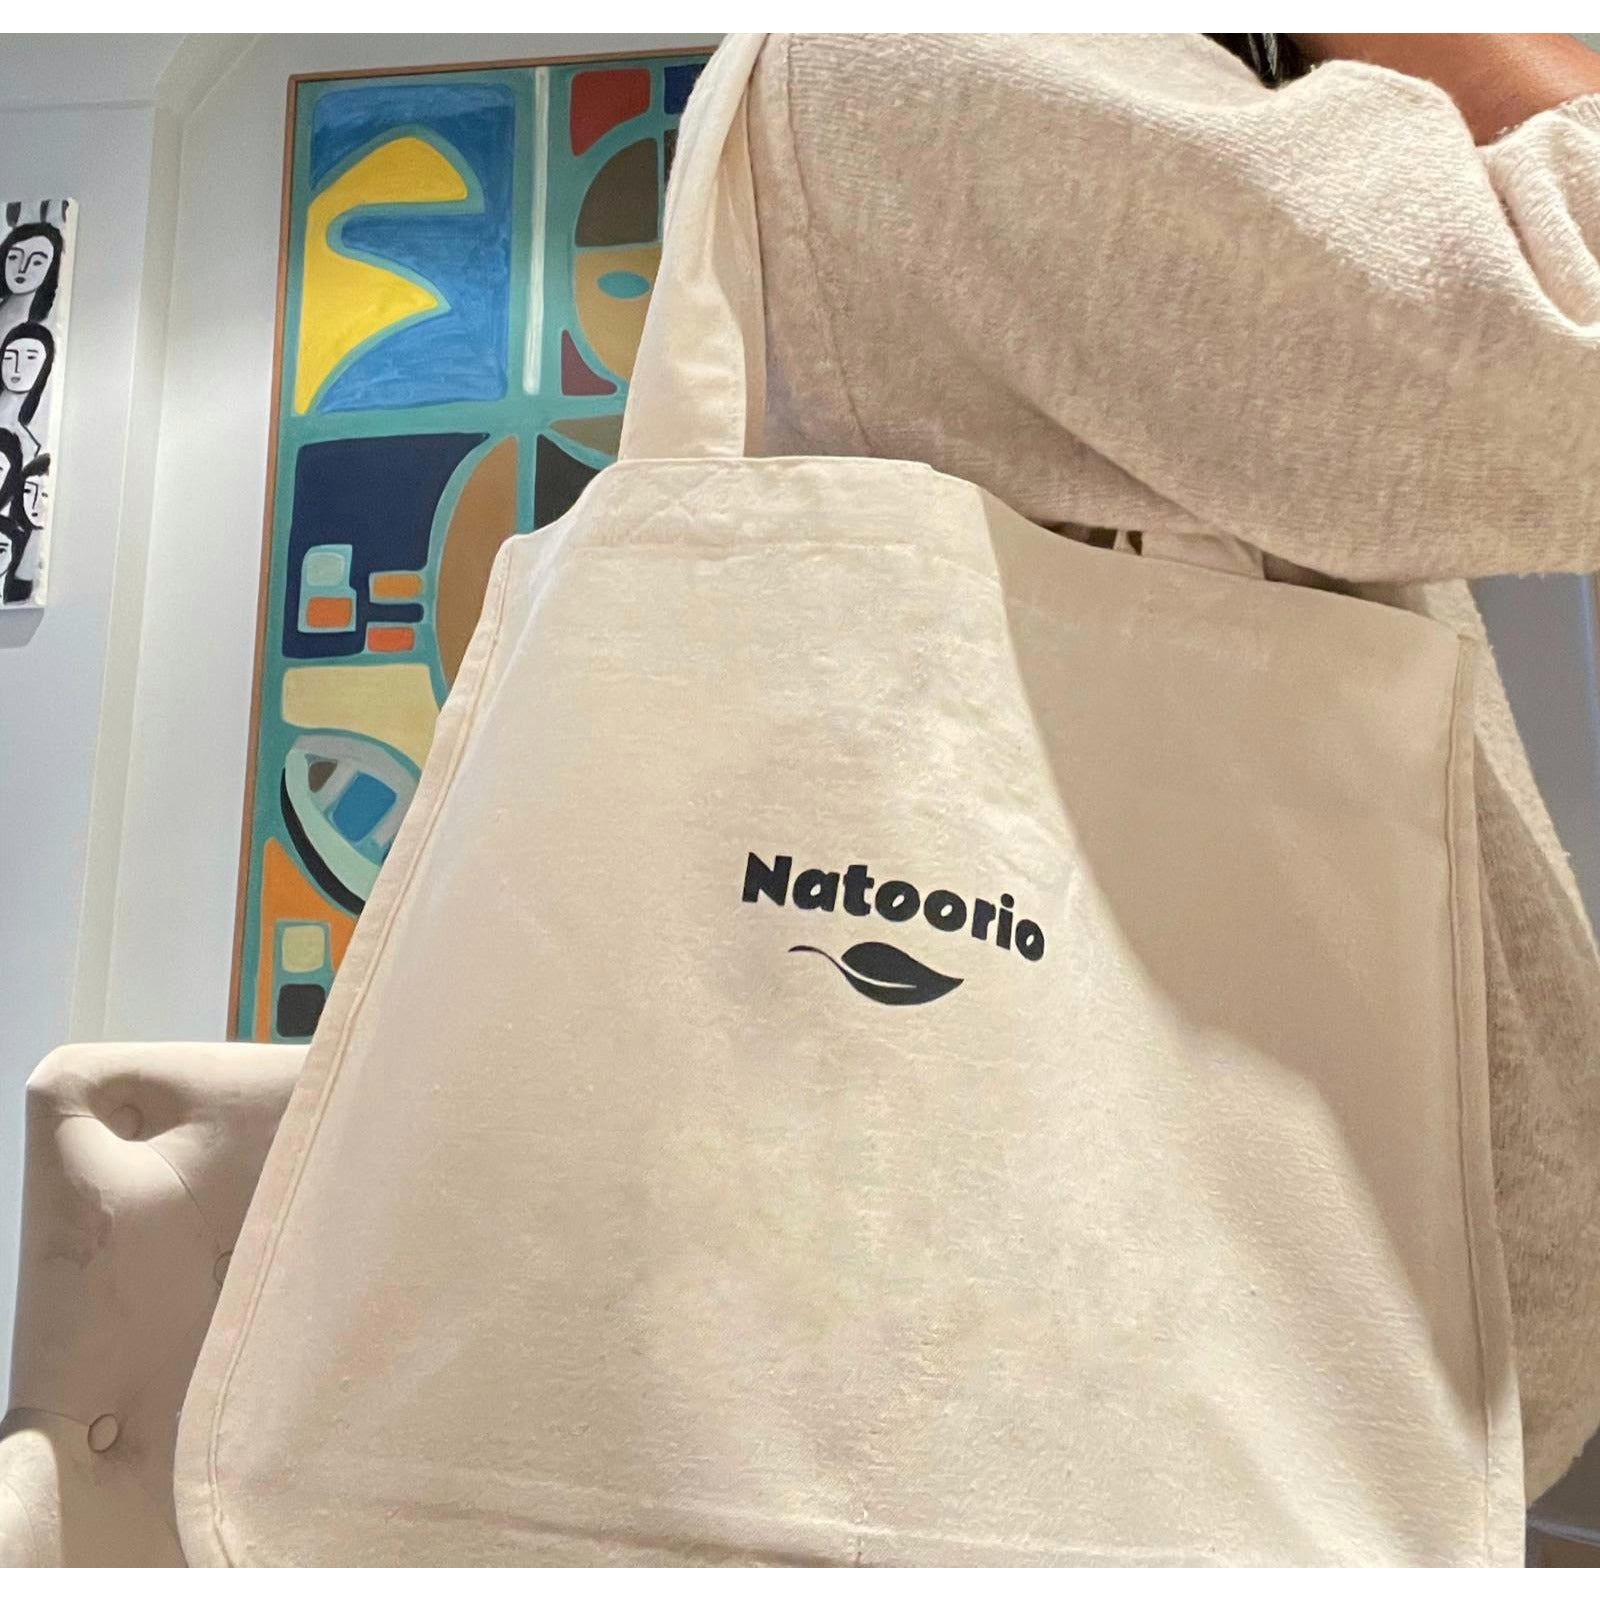 Canvas Grocery Shopping Tote Bags in Cotton with Handles - natural color - natoorio